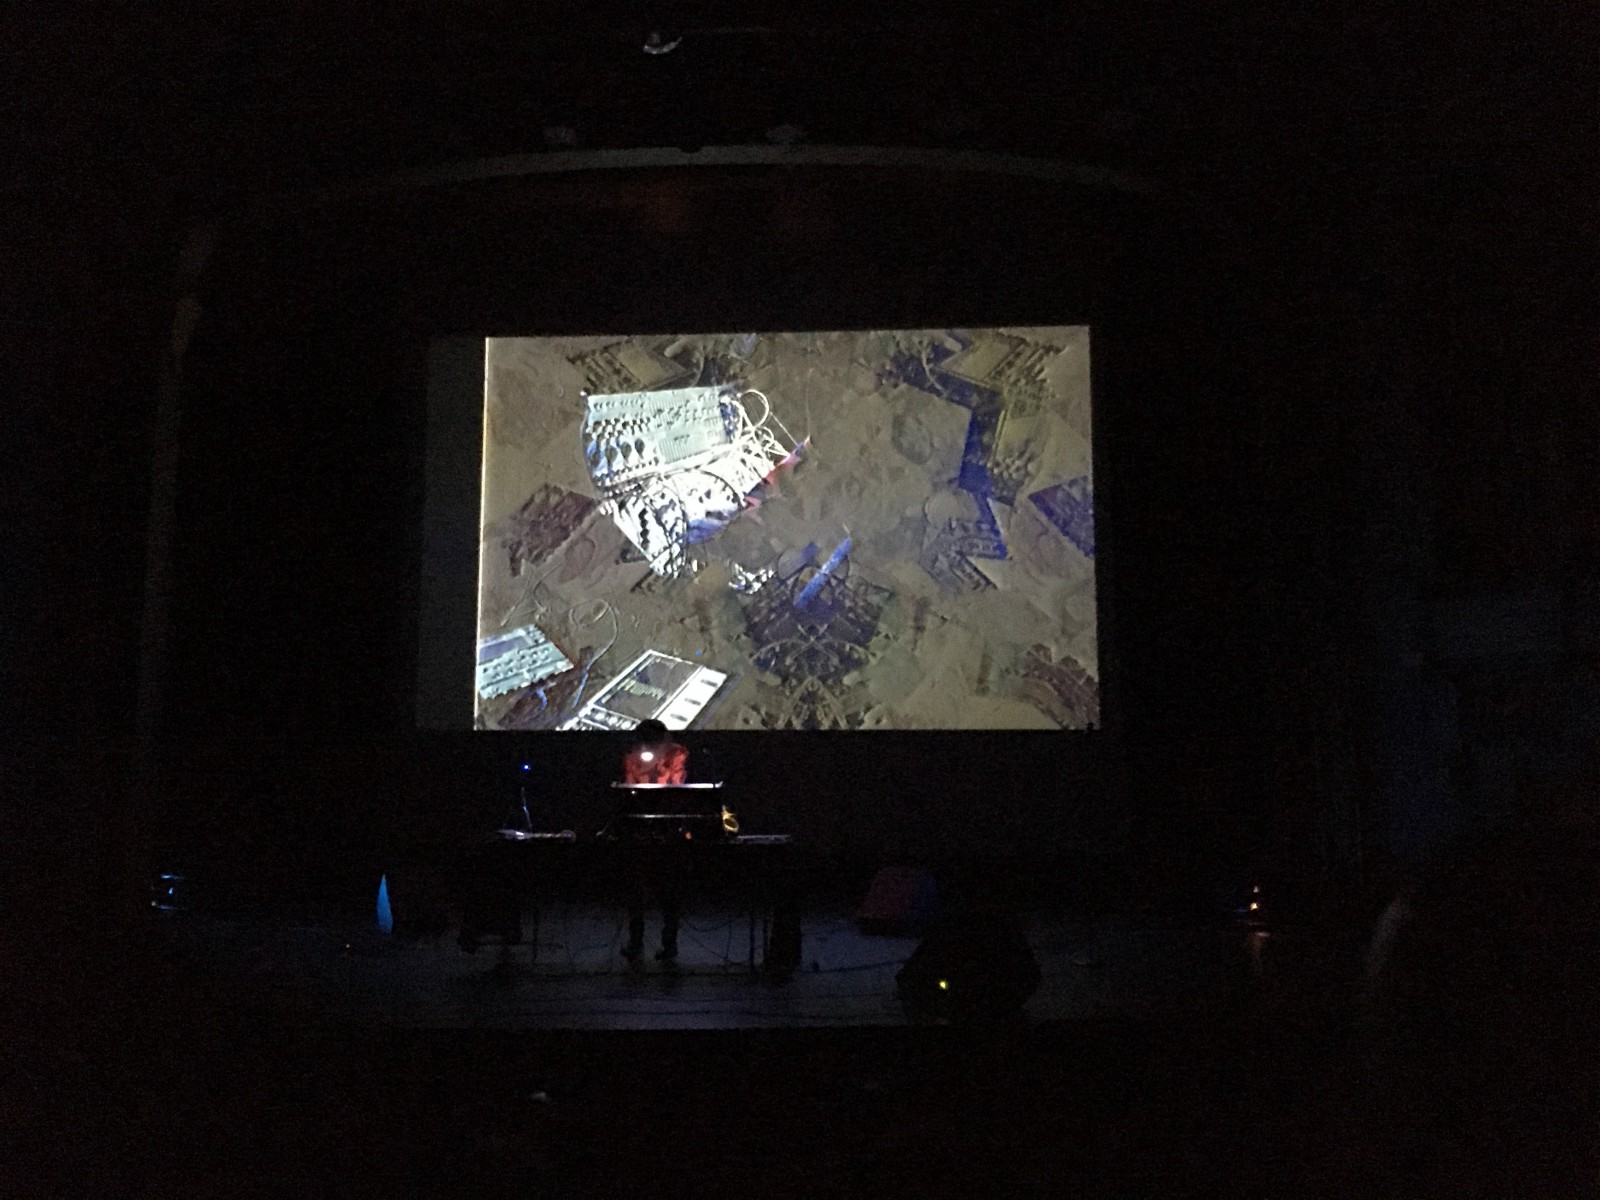 Suzanne Cianni at the San Francisco Electronic Music Festival